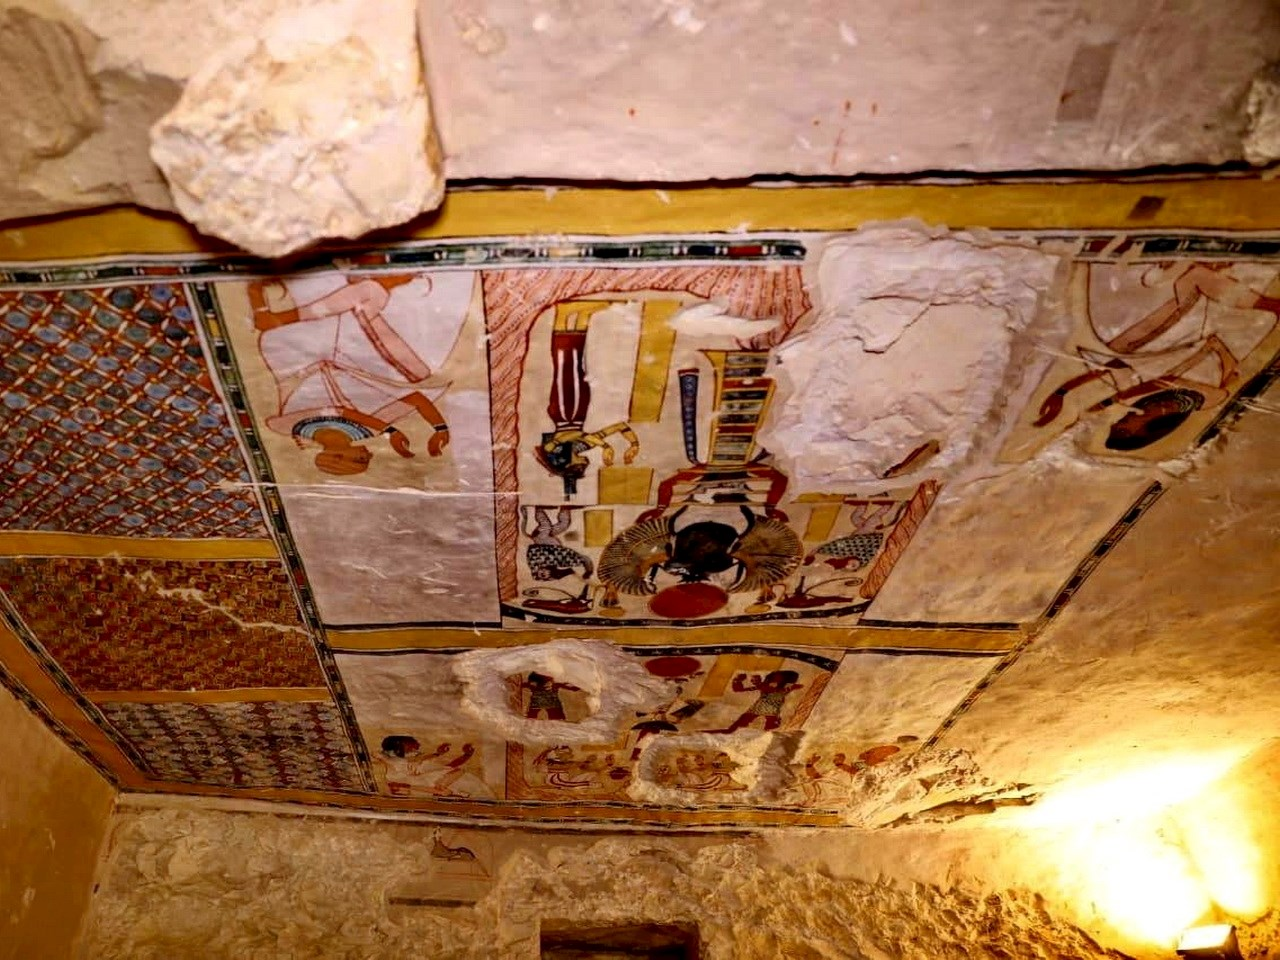 3000 year old tomb contains intact coffins discovered in Luxor